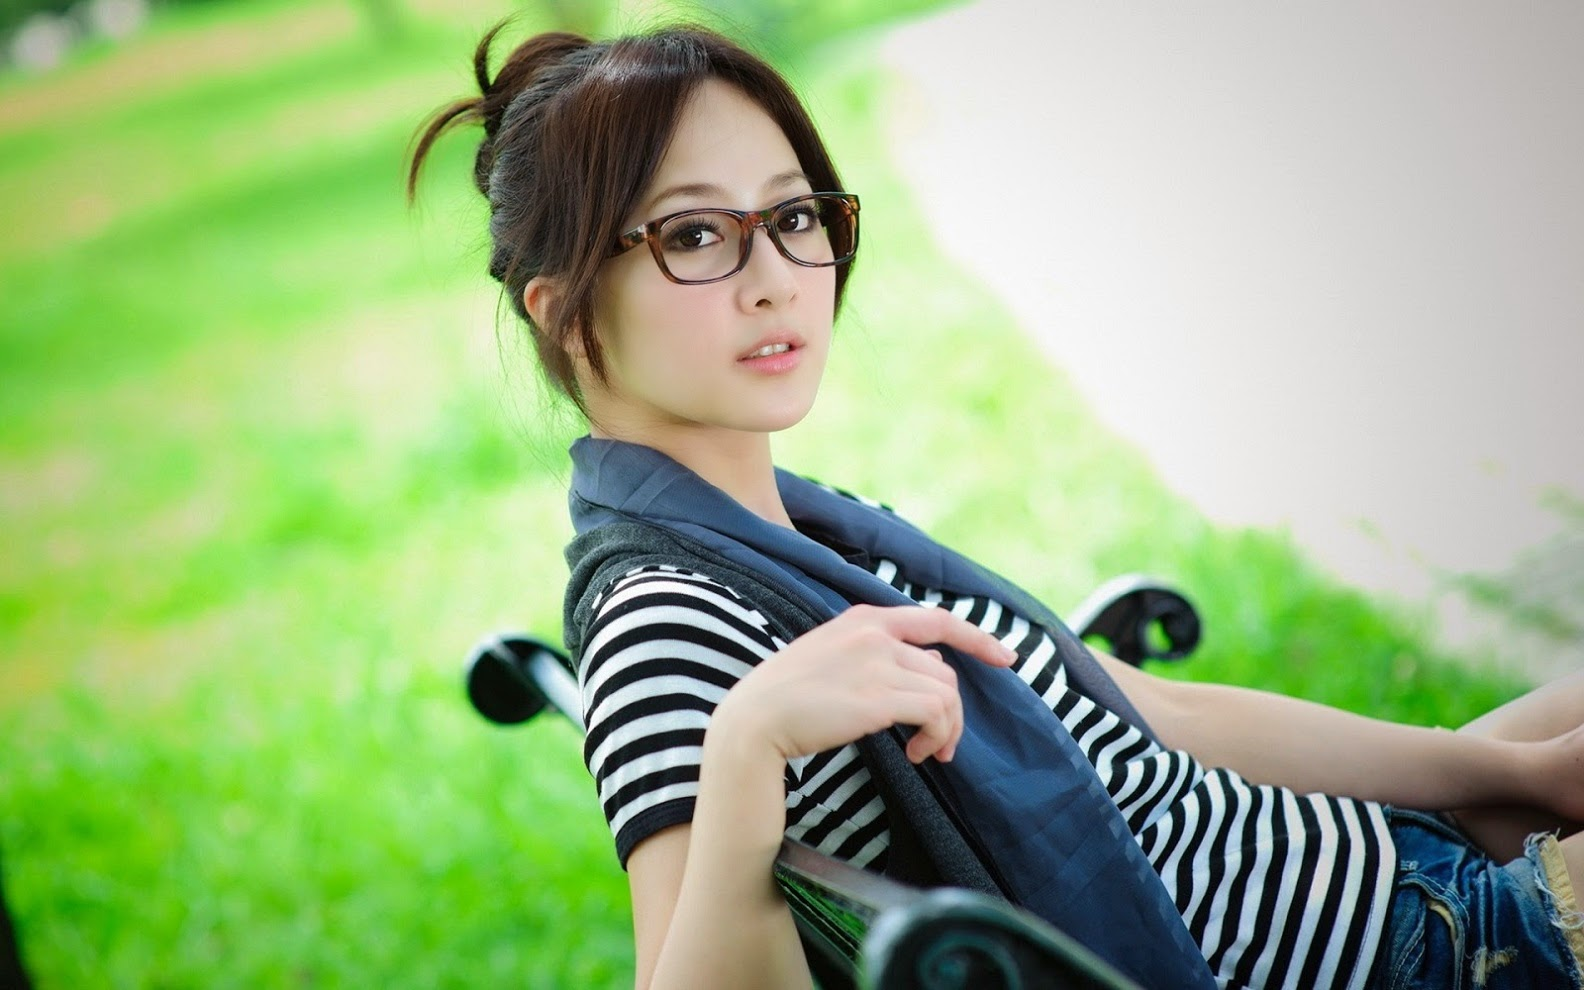 50 best girl hd wallpapers unique wallpaper 2884 cute korean girl hd wallpaperz voltagebd Image collections